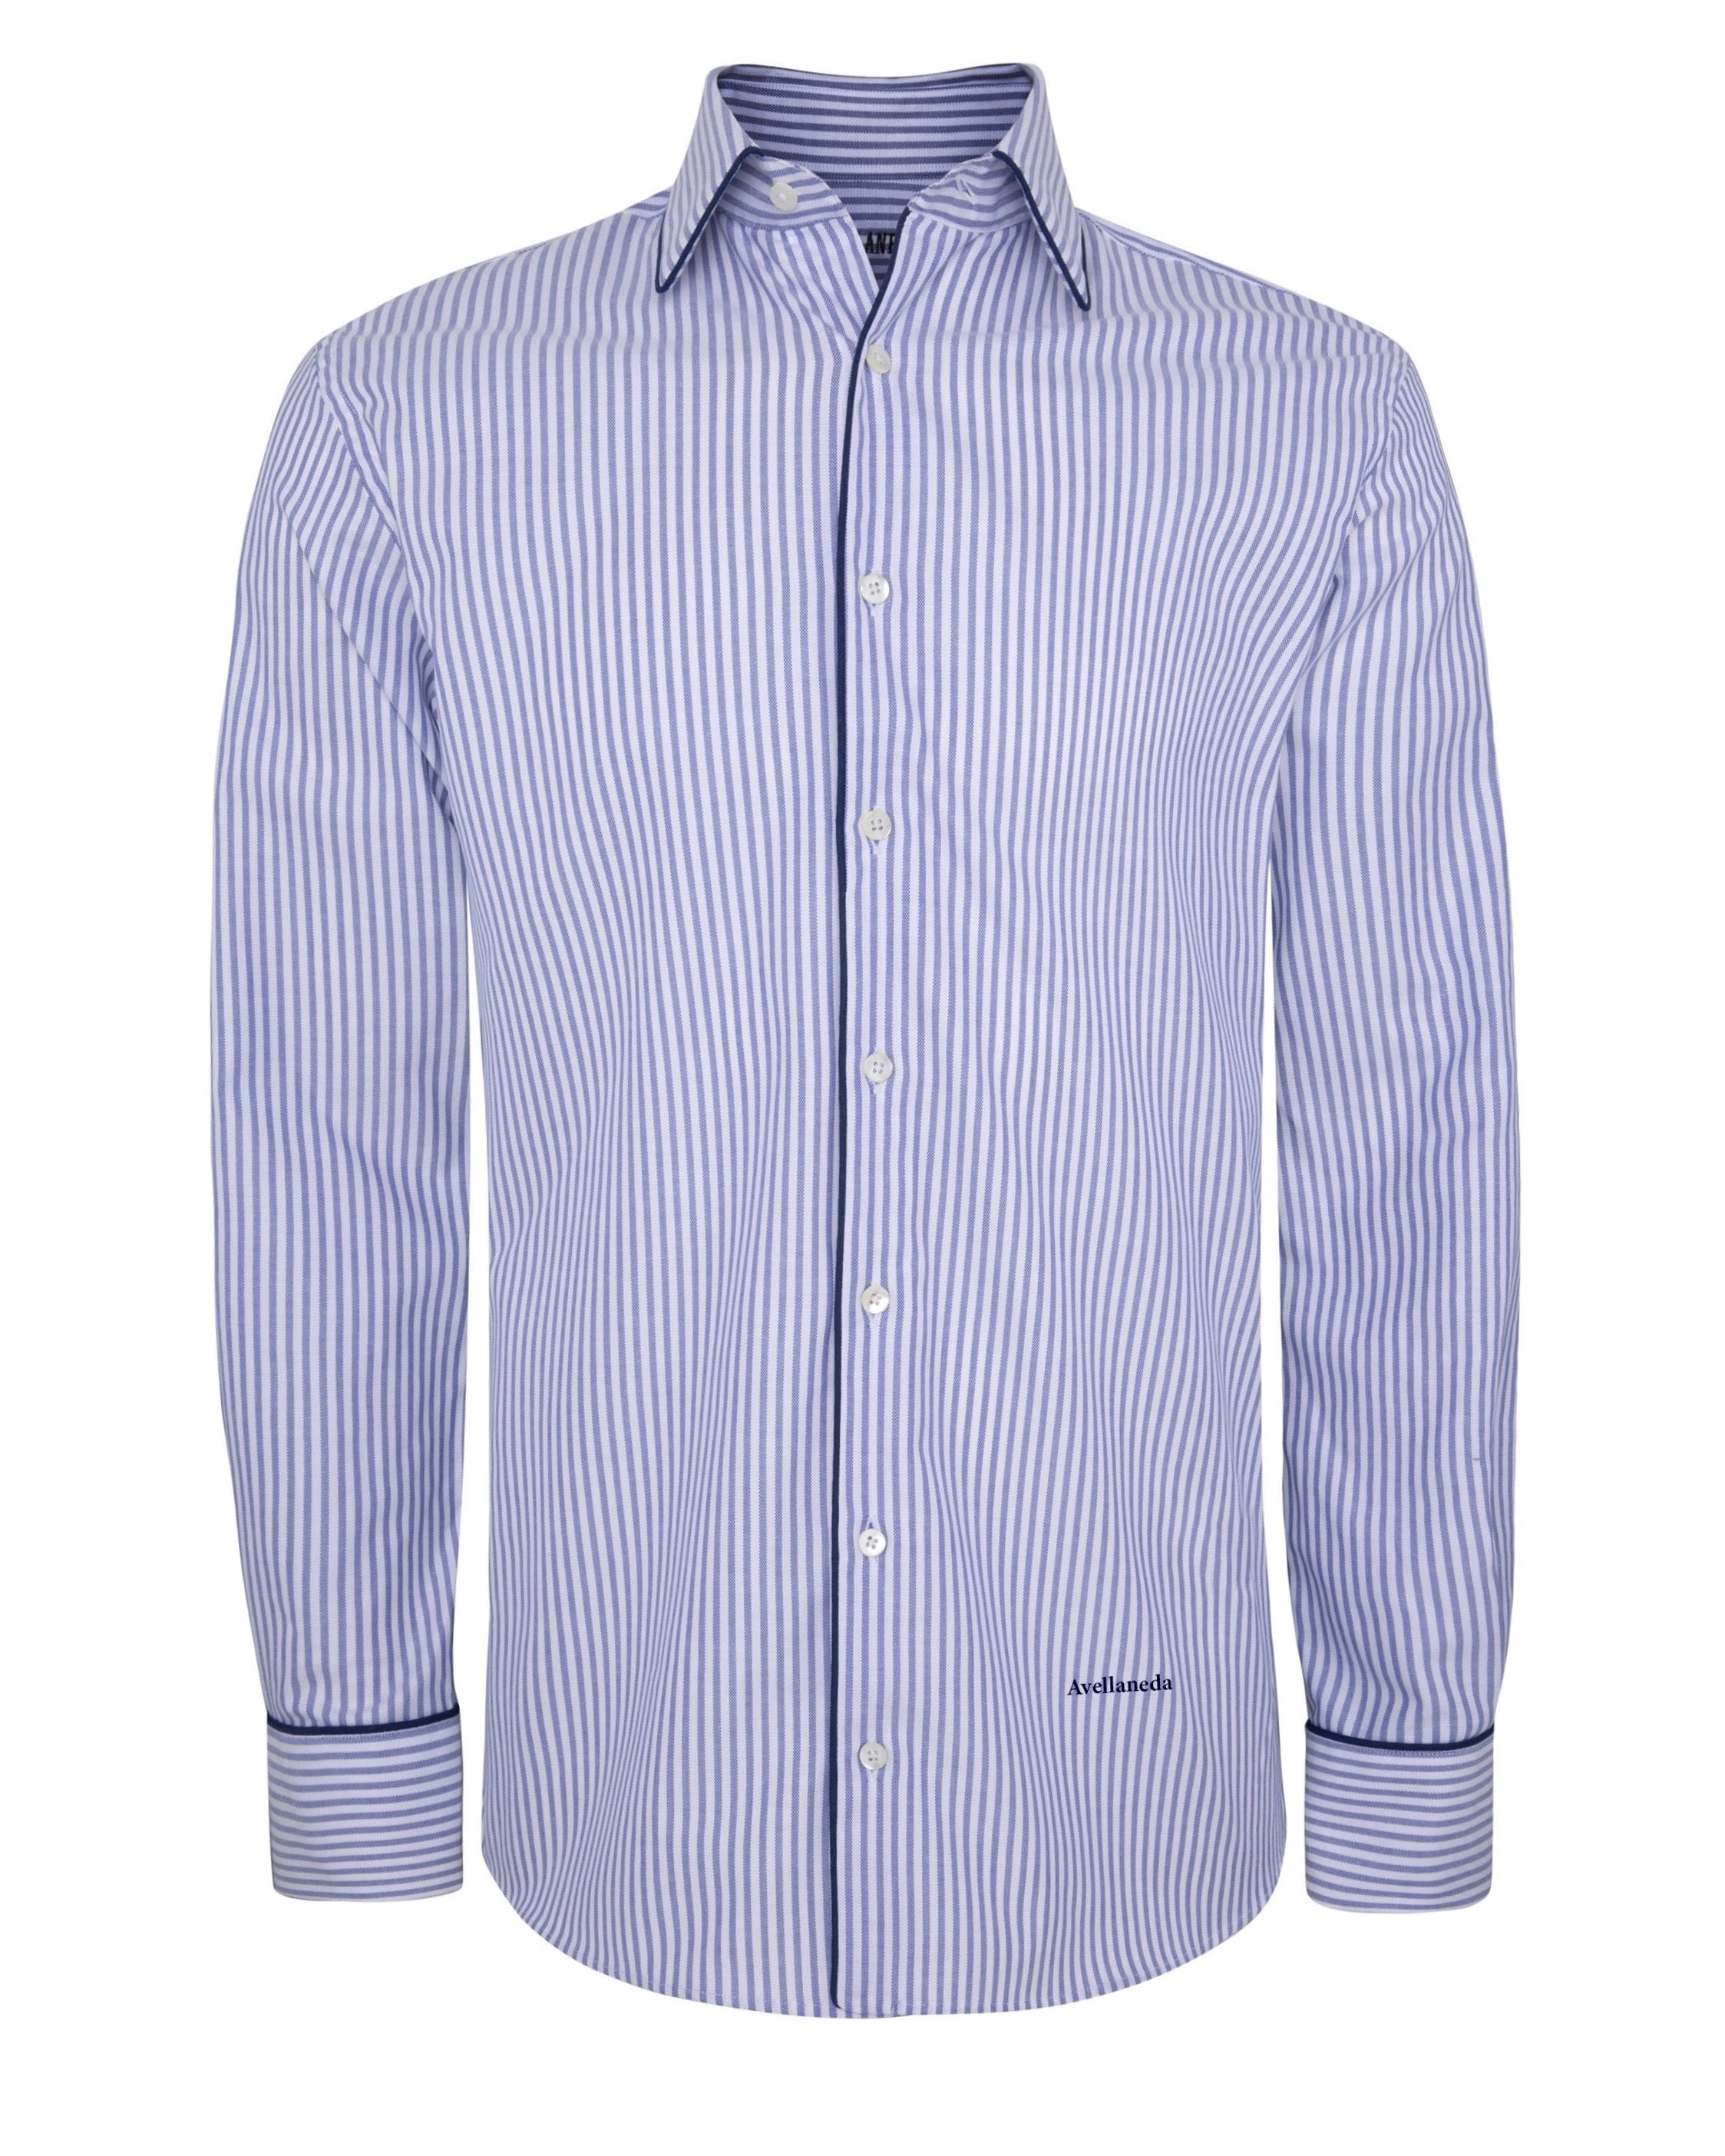 MEN'S CLASSIC STRIPED SHIRT